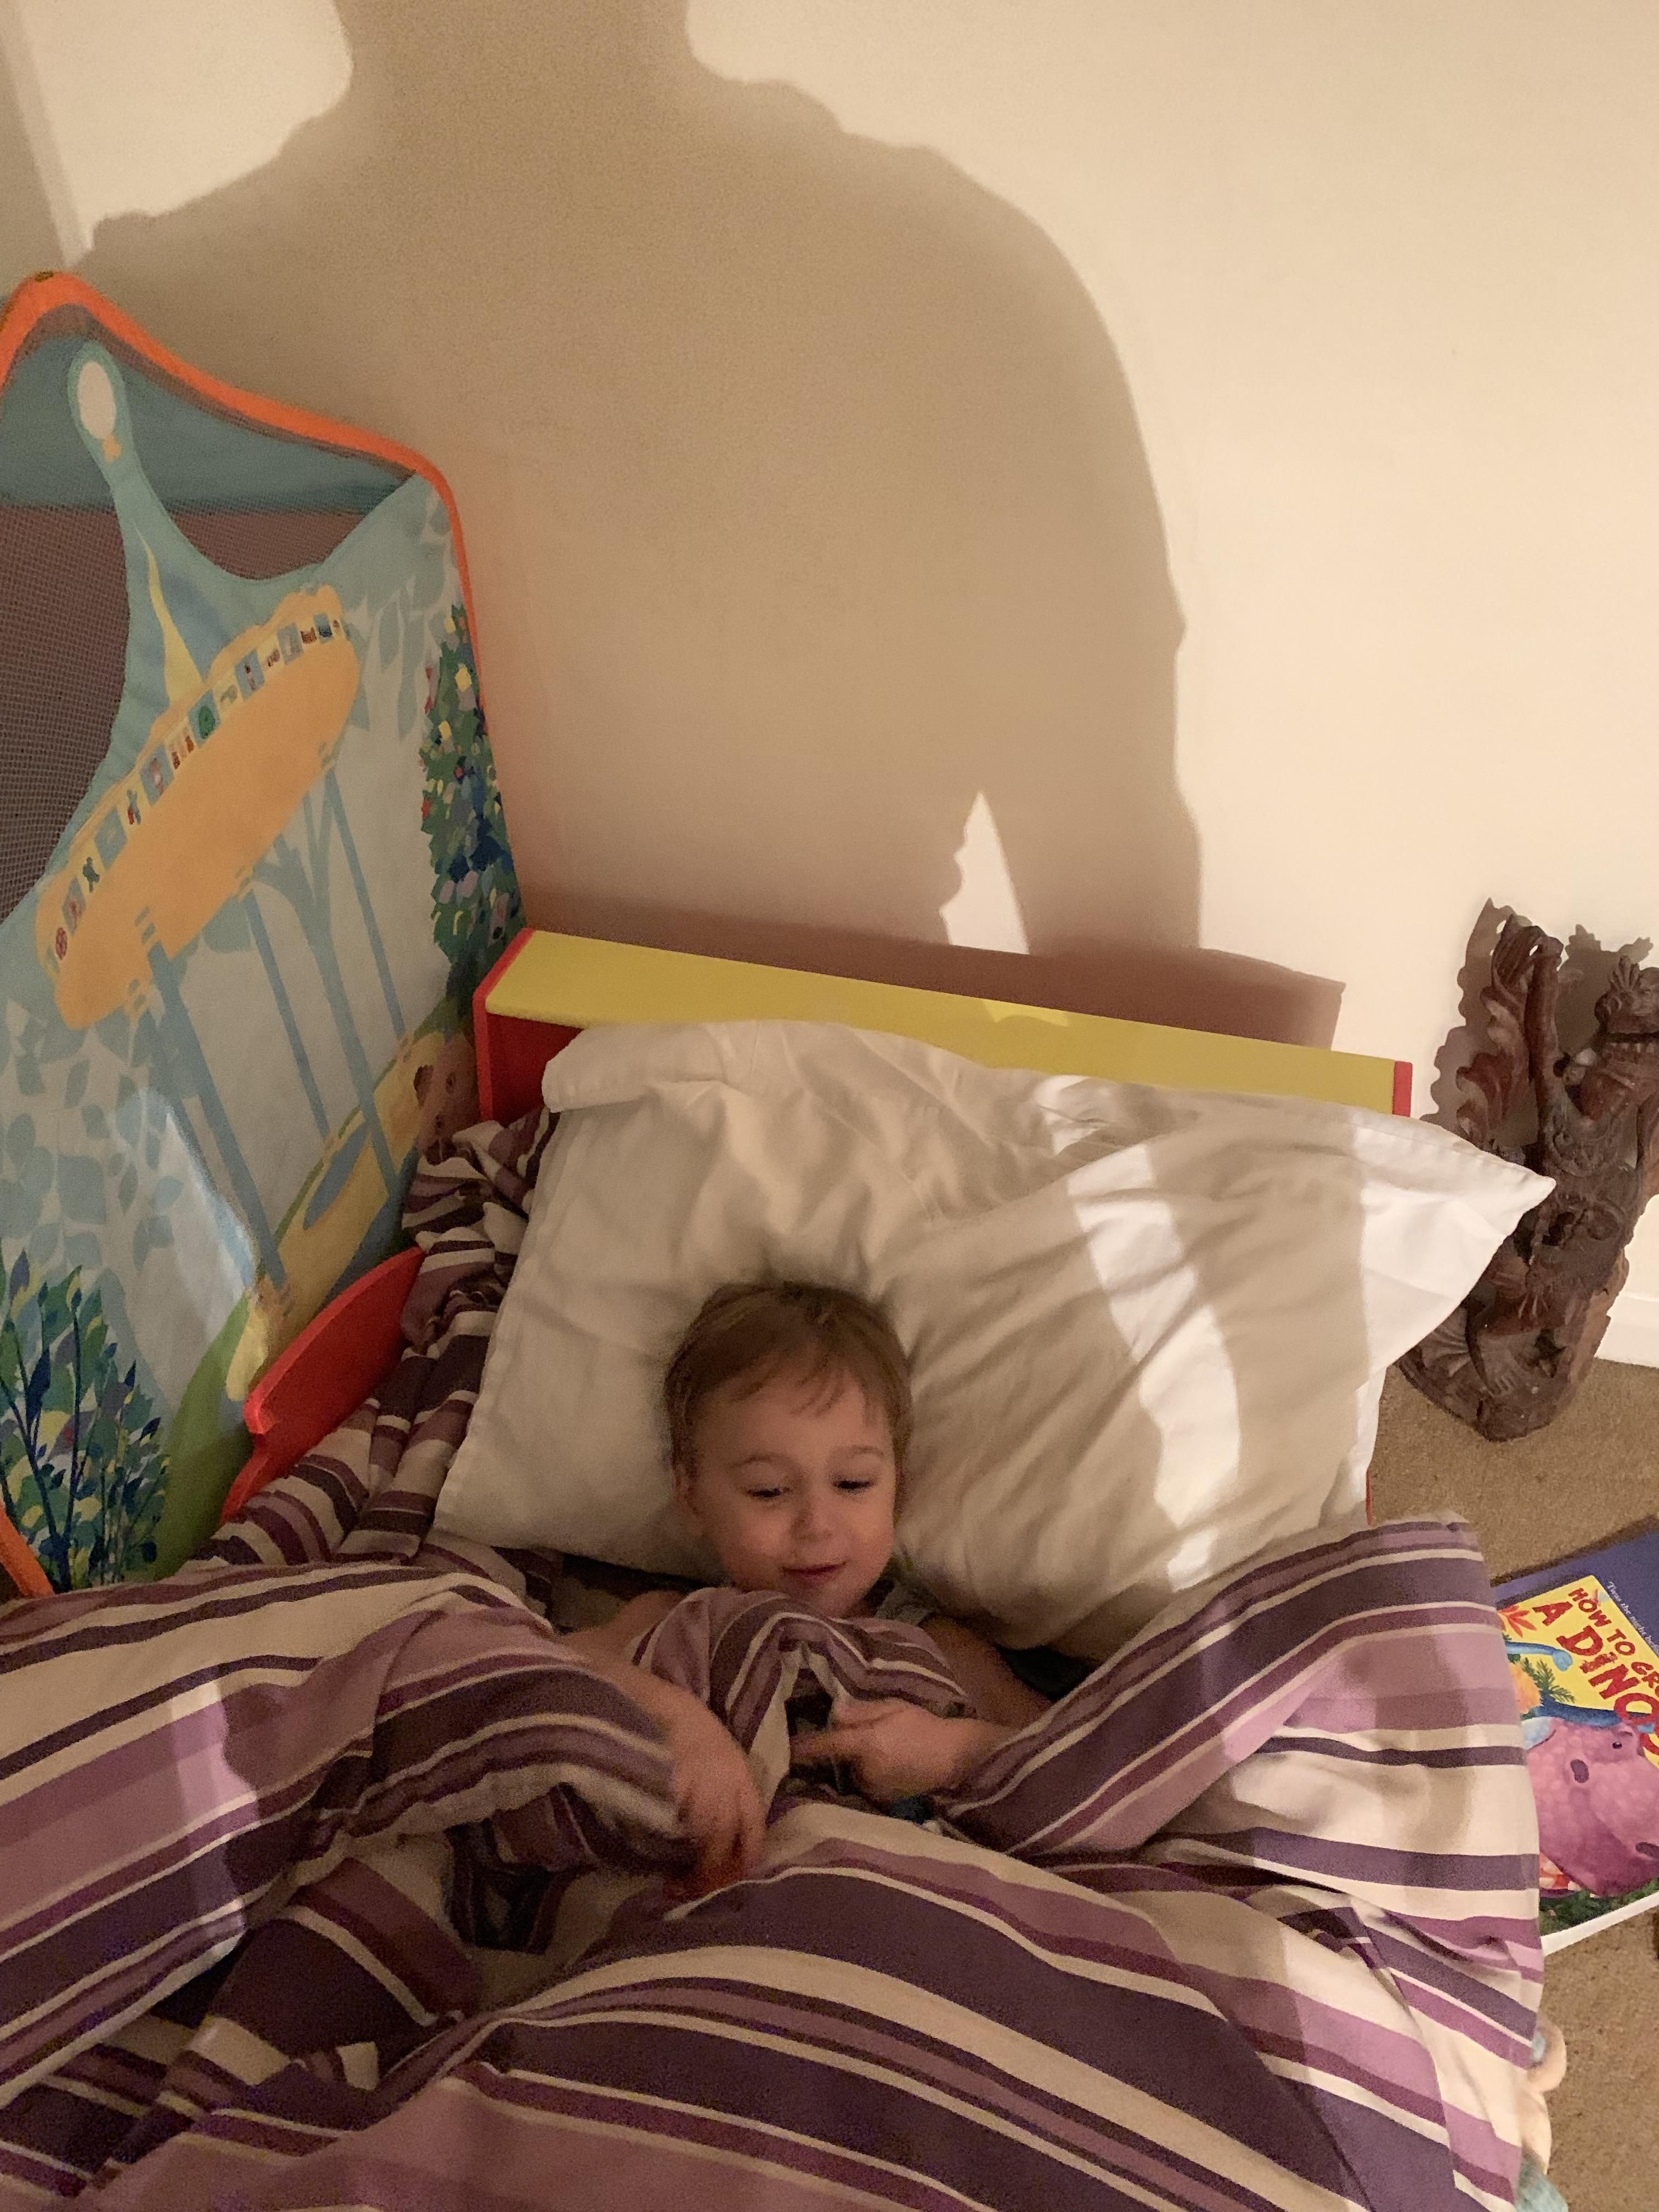 The photo meant to ensure my wife I had put our son to bed turned out quite sinister.